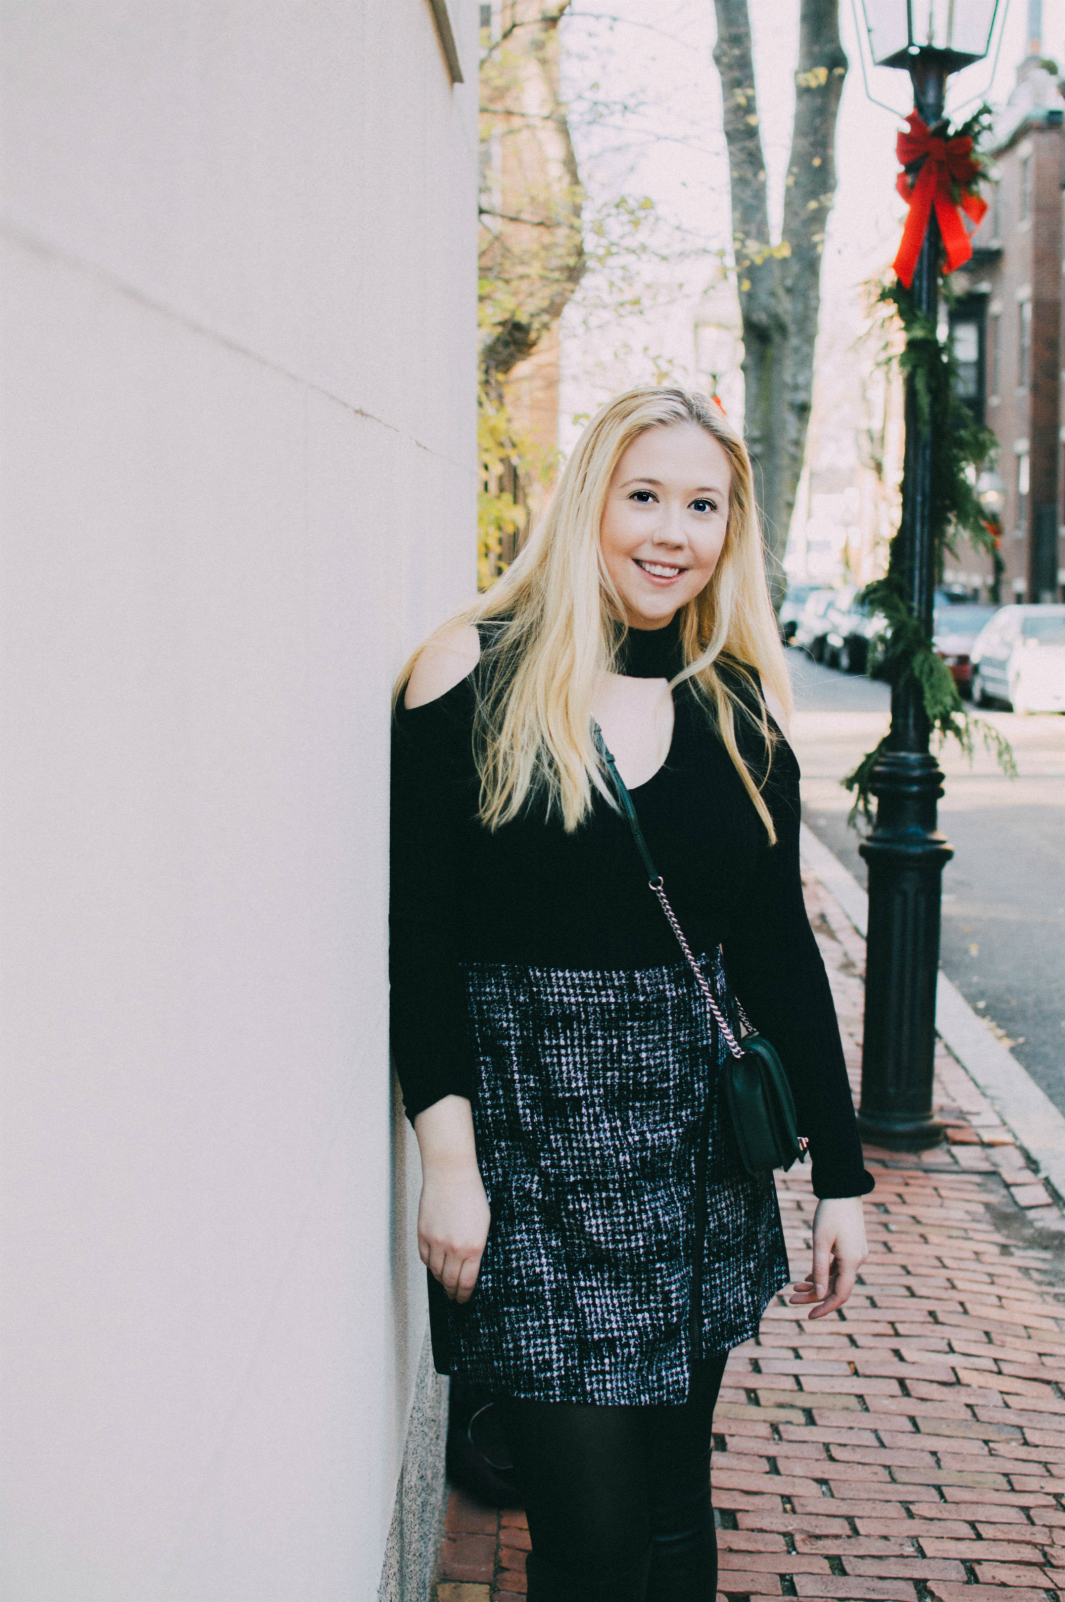 Blonde Walking on Beacon Hill in Boston